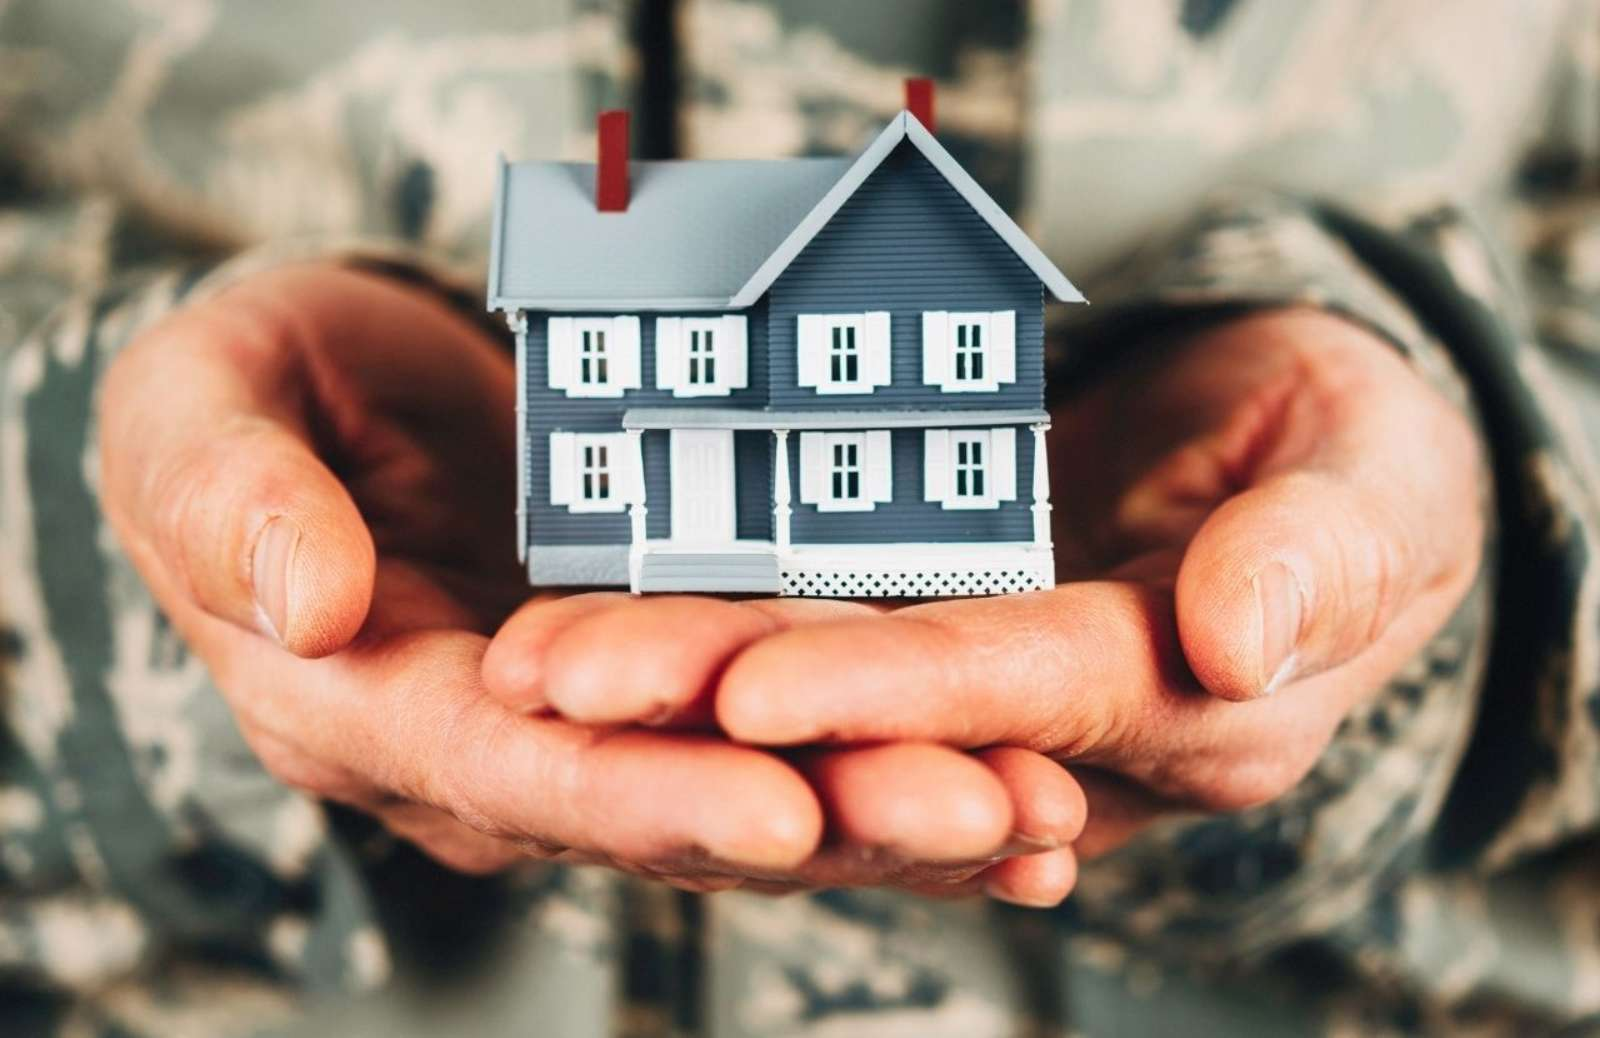 Person dressed in  military fatigues holding tiny house replica in palms